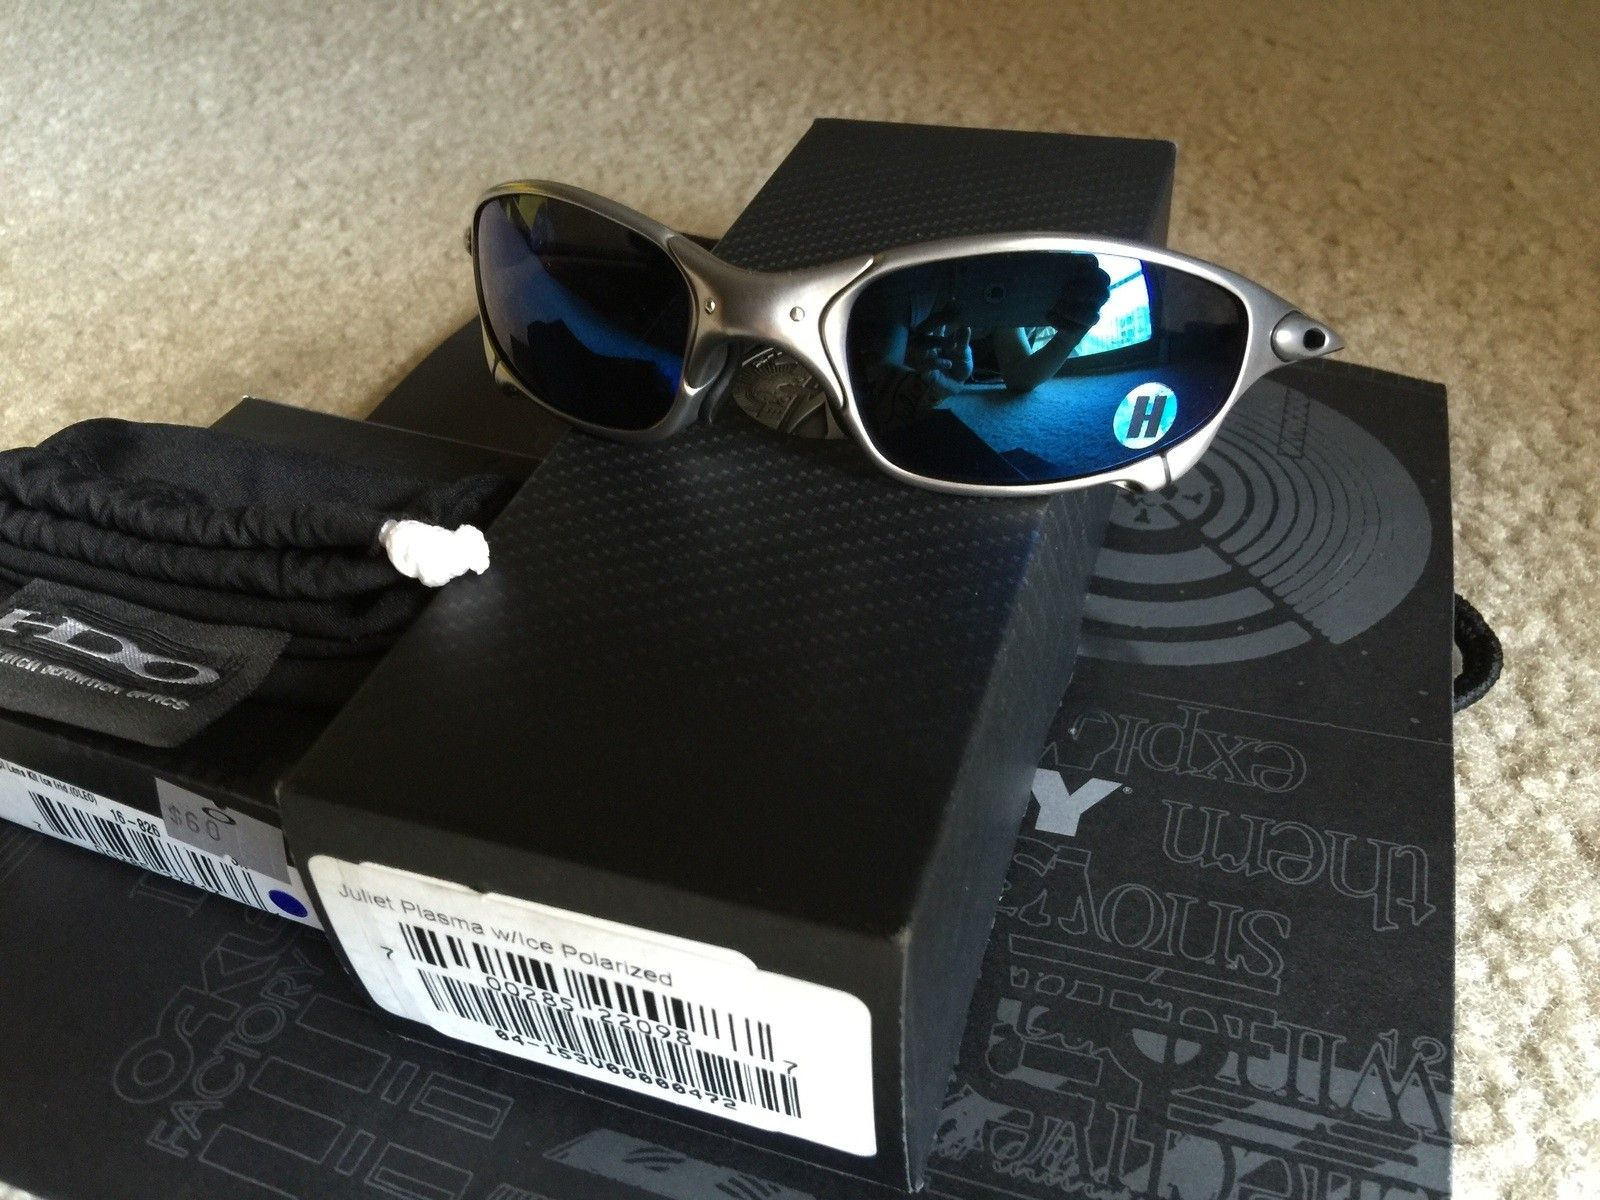 Mint like new juliet ice last gen with extra ruby lenses - image.jpg